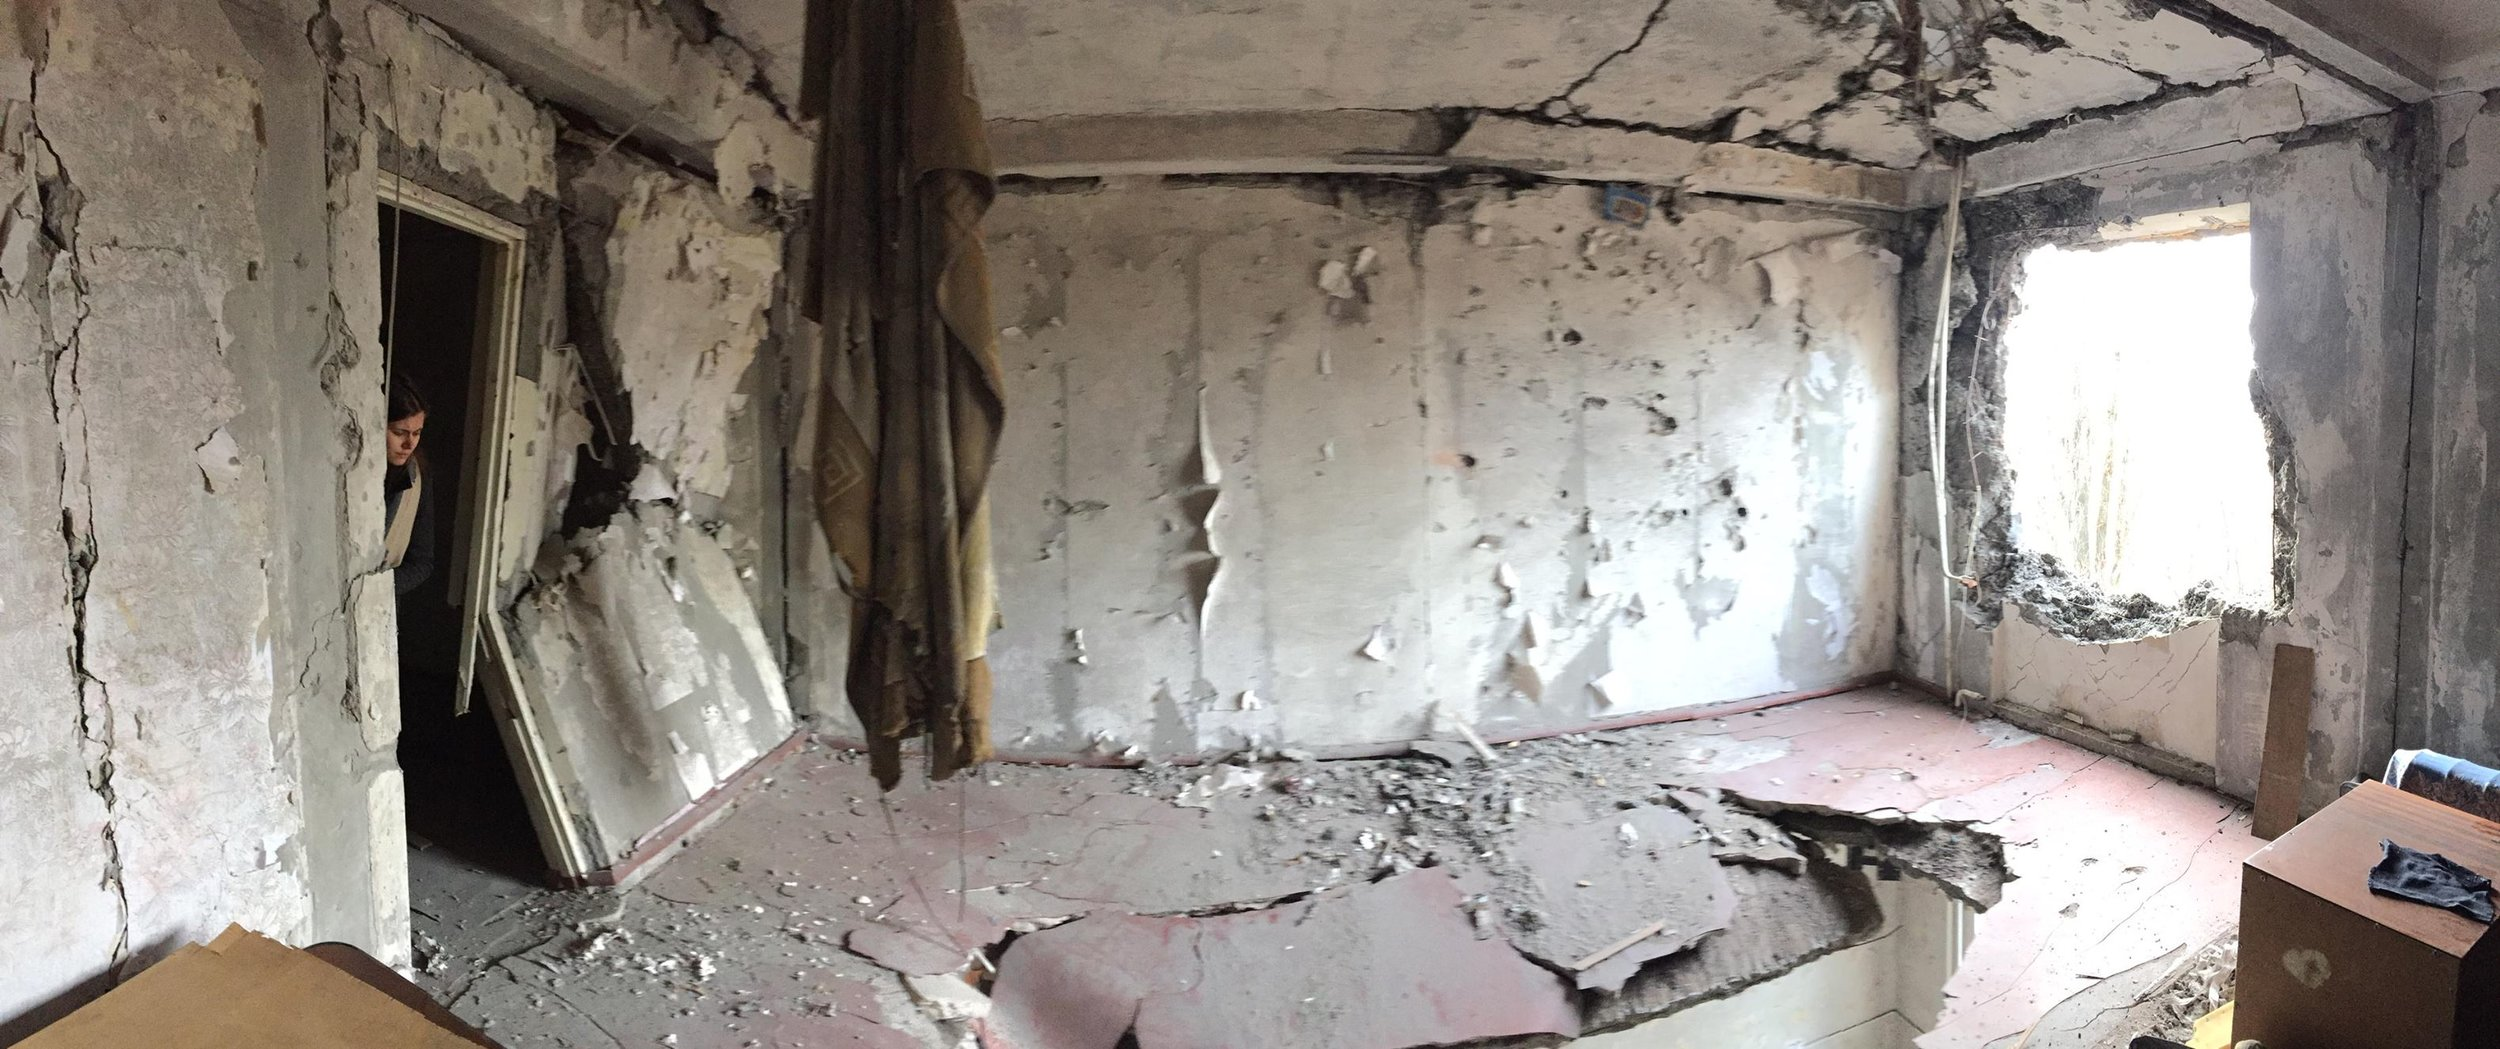 In a heavily damaged apartment building in Donetsk